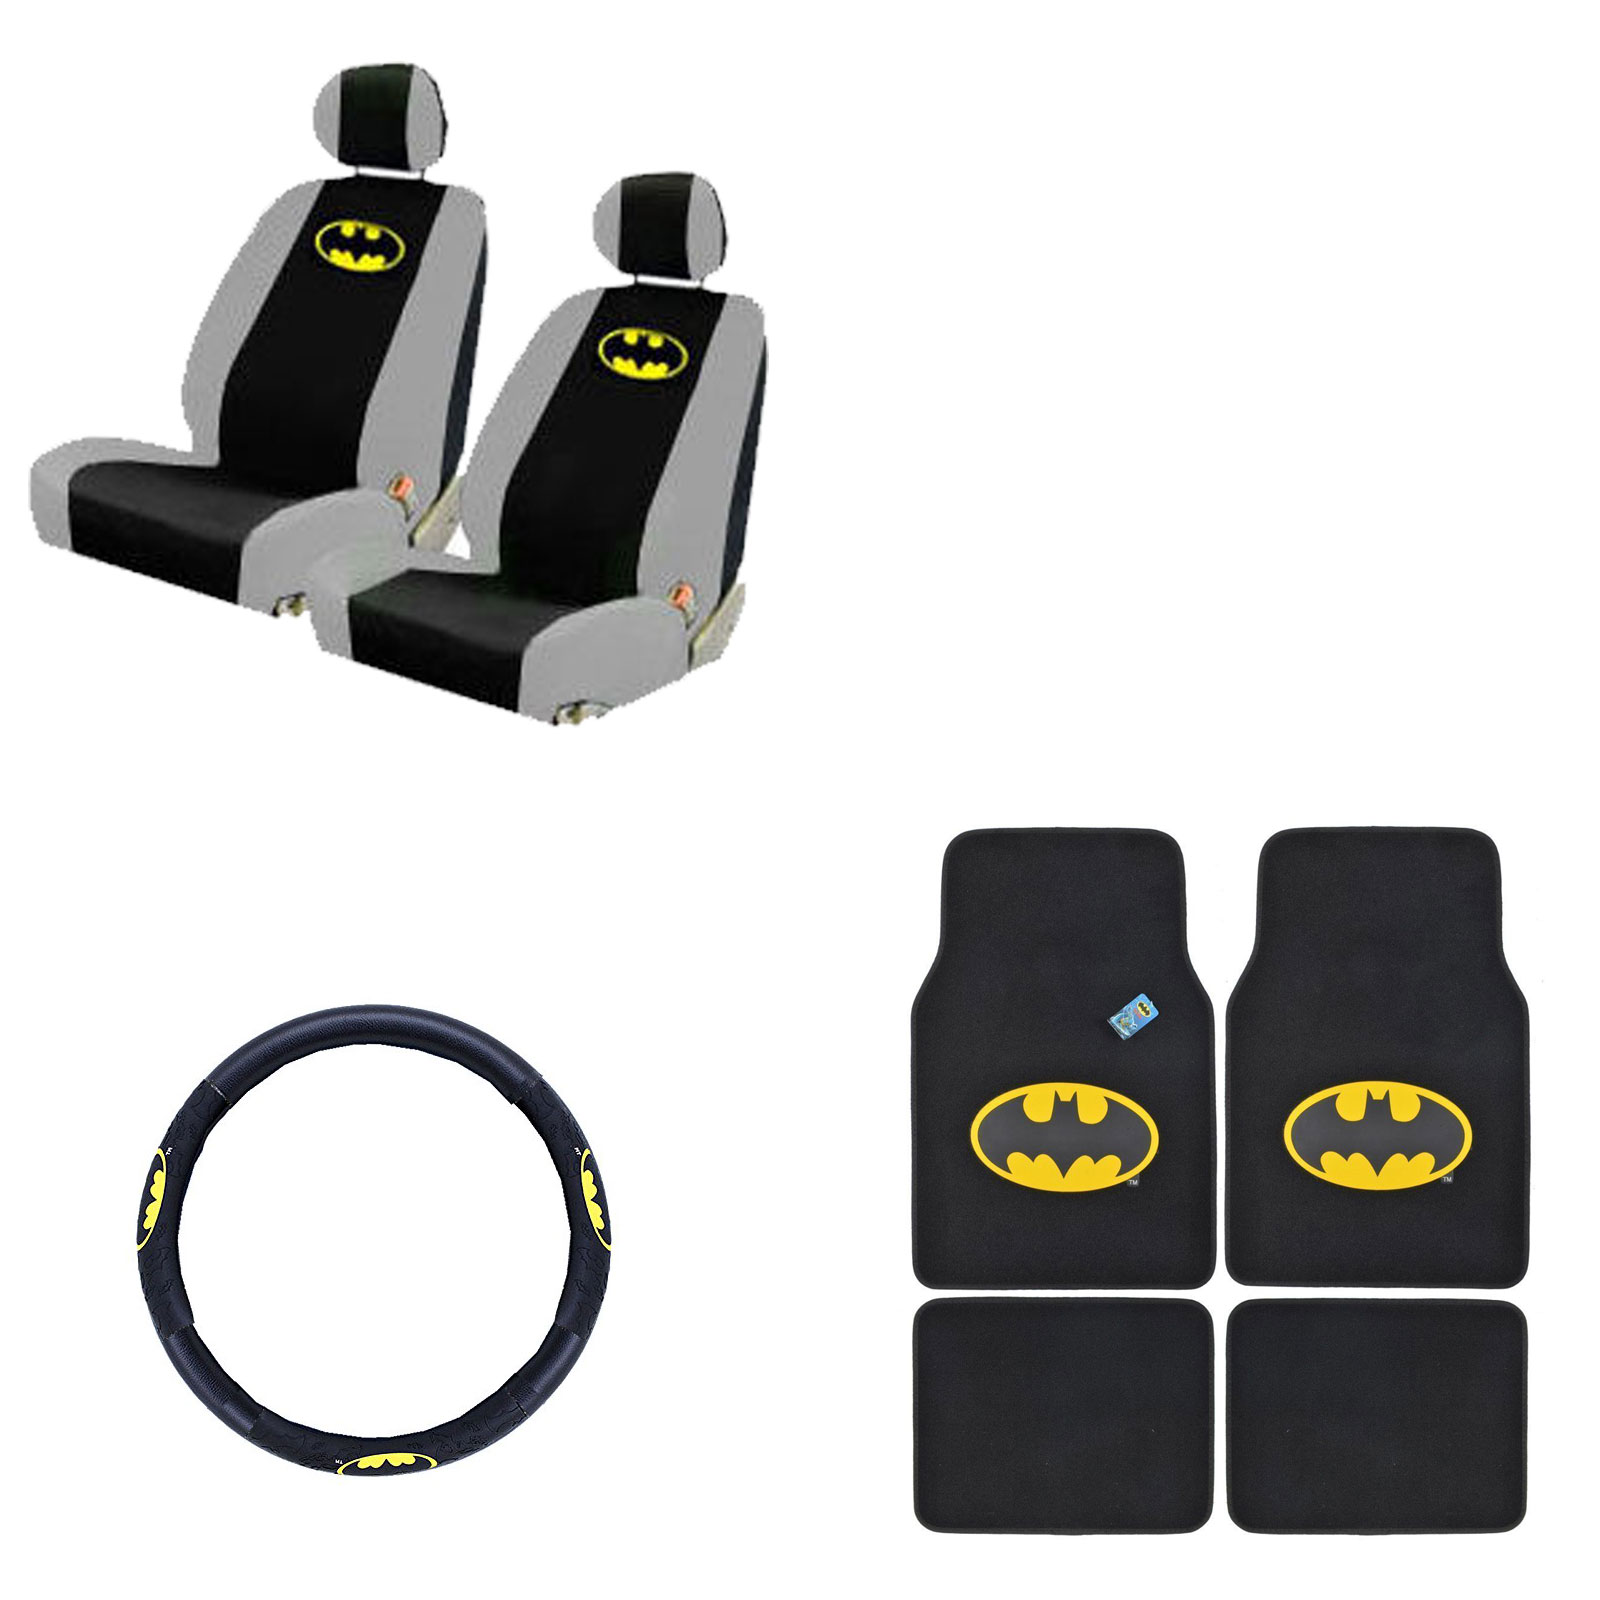 Batman 4 Pc Carpet Floor Mats And 2 Pc Seat Covers With Wheel Cover